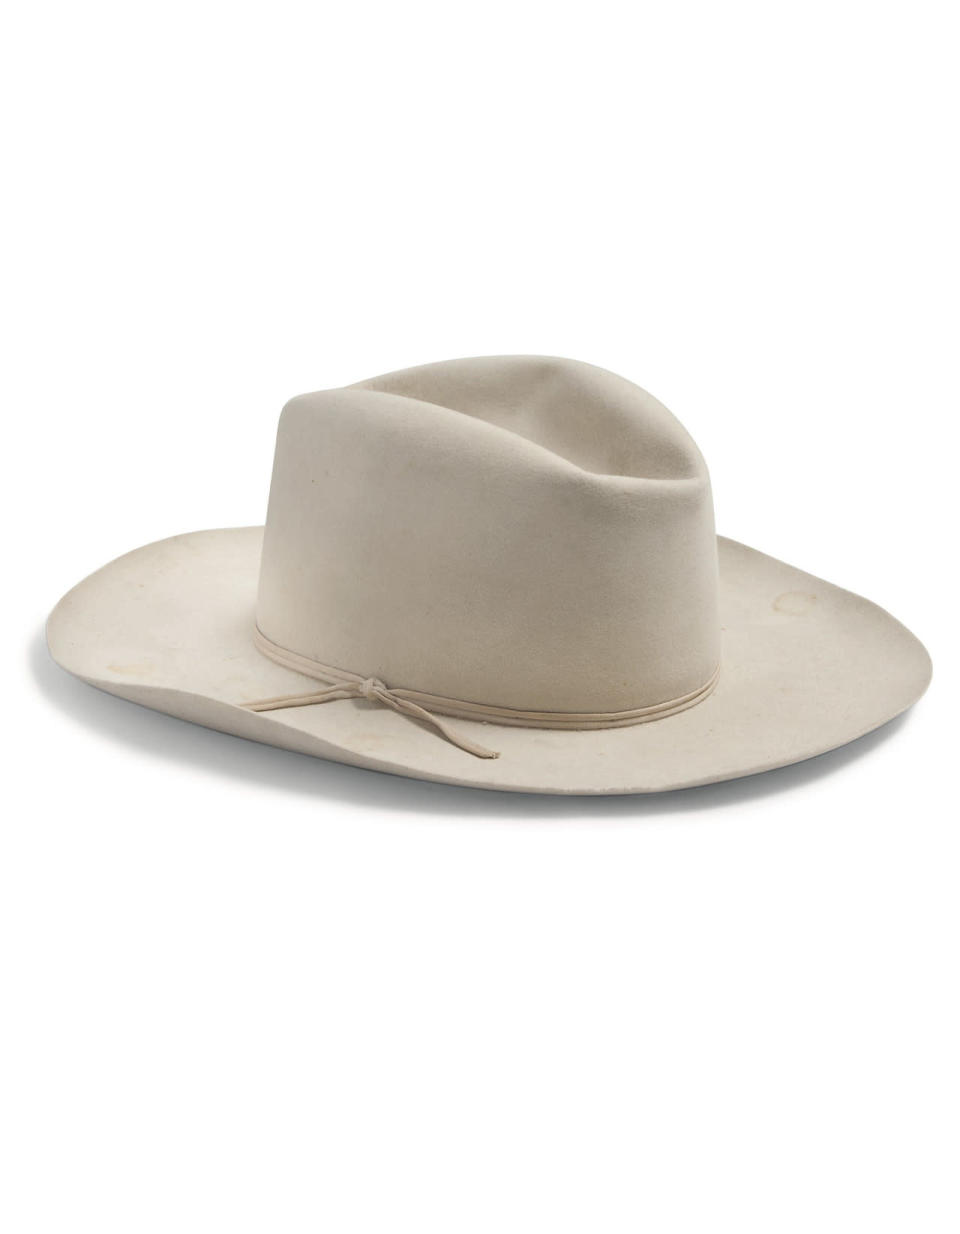 <p>History lovers can get their hands on Winston Churchill's stetson hat in the auction. (David Gainsborough Roberts Collection/Christie's/PA Wire)</p>